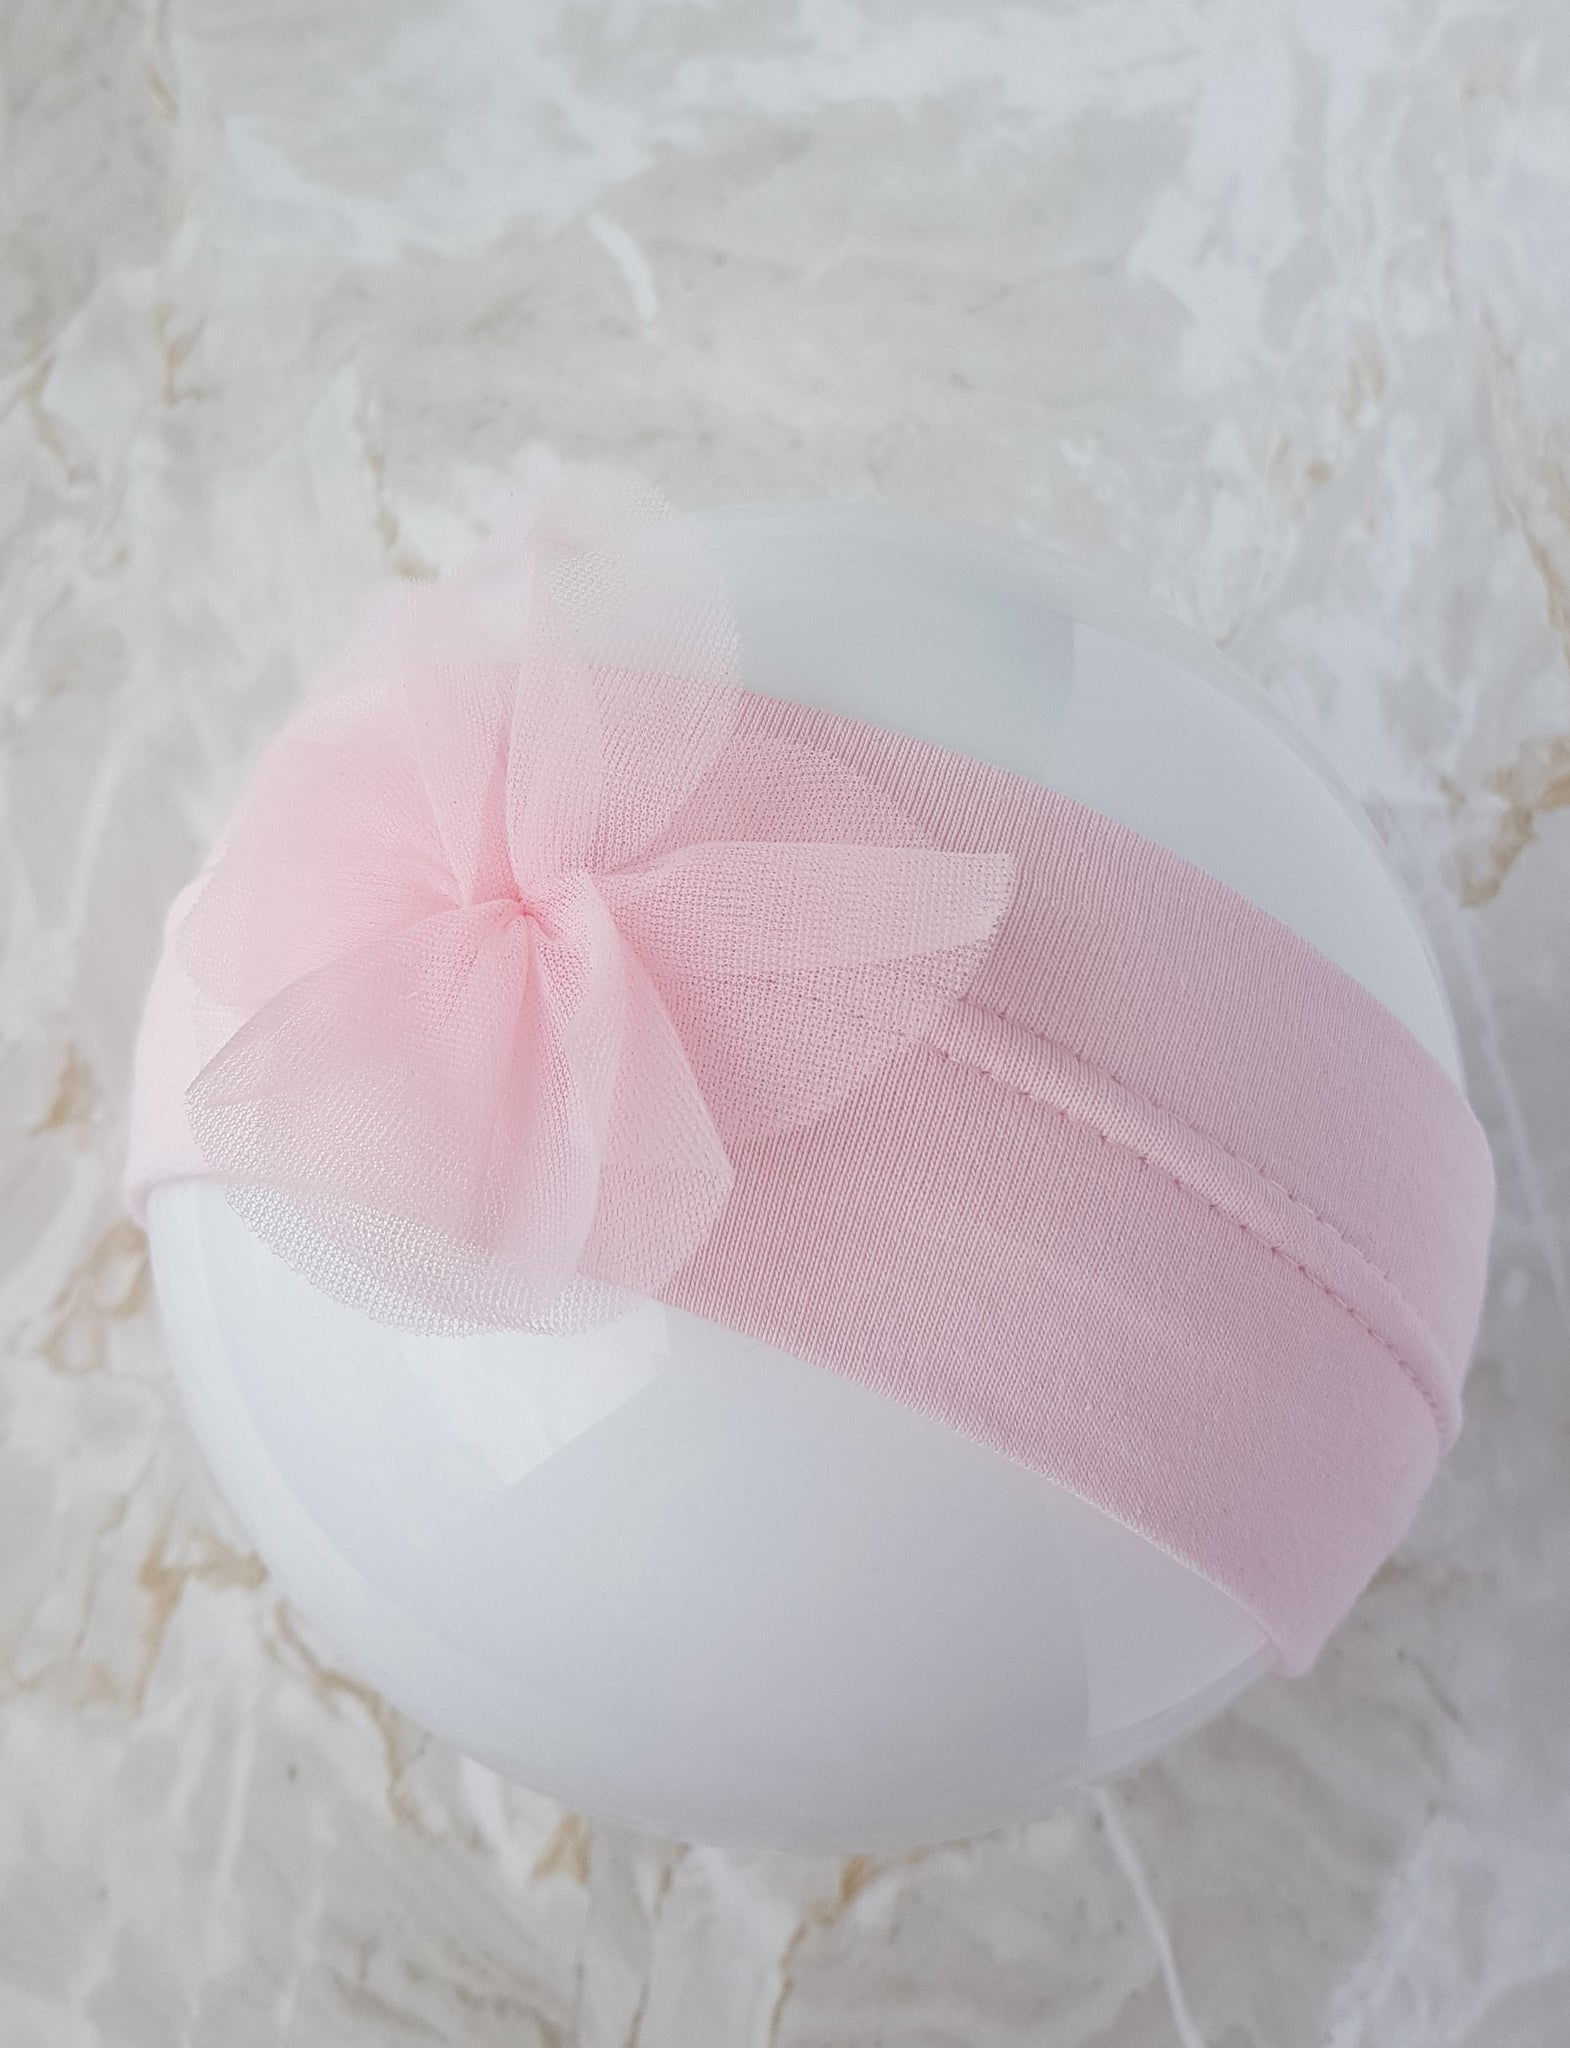 Cotton flower Baby Girl headband, 7 to 16 months old,  head size 46-48cm